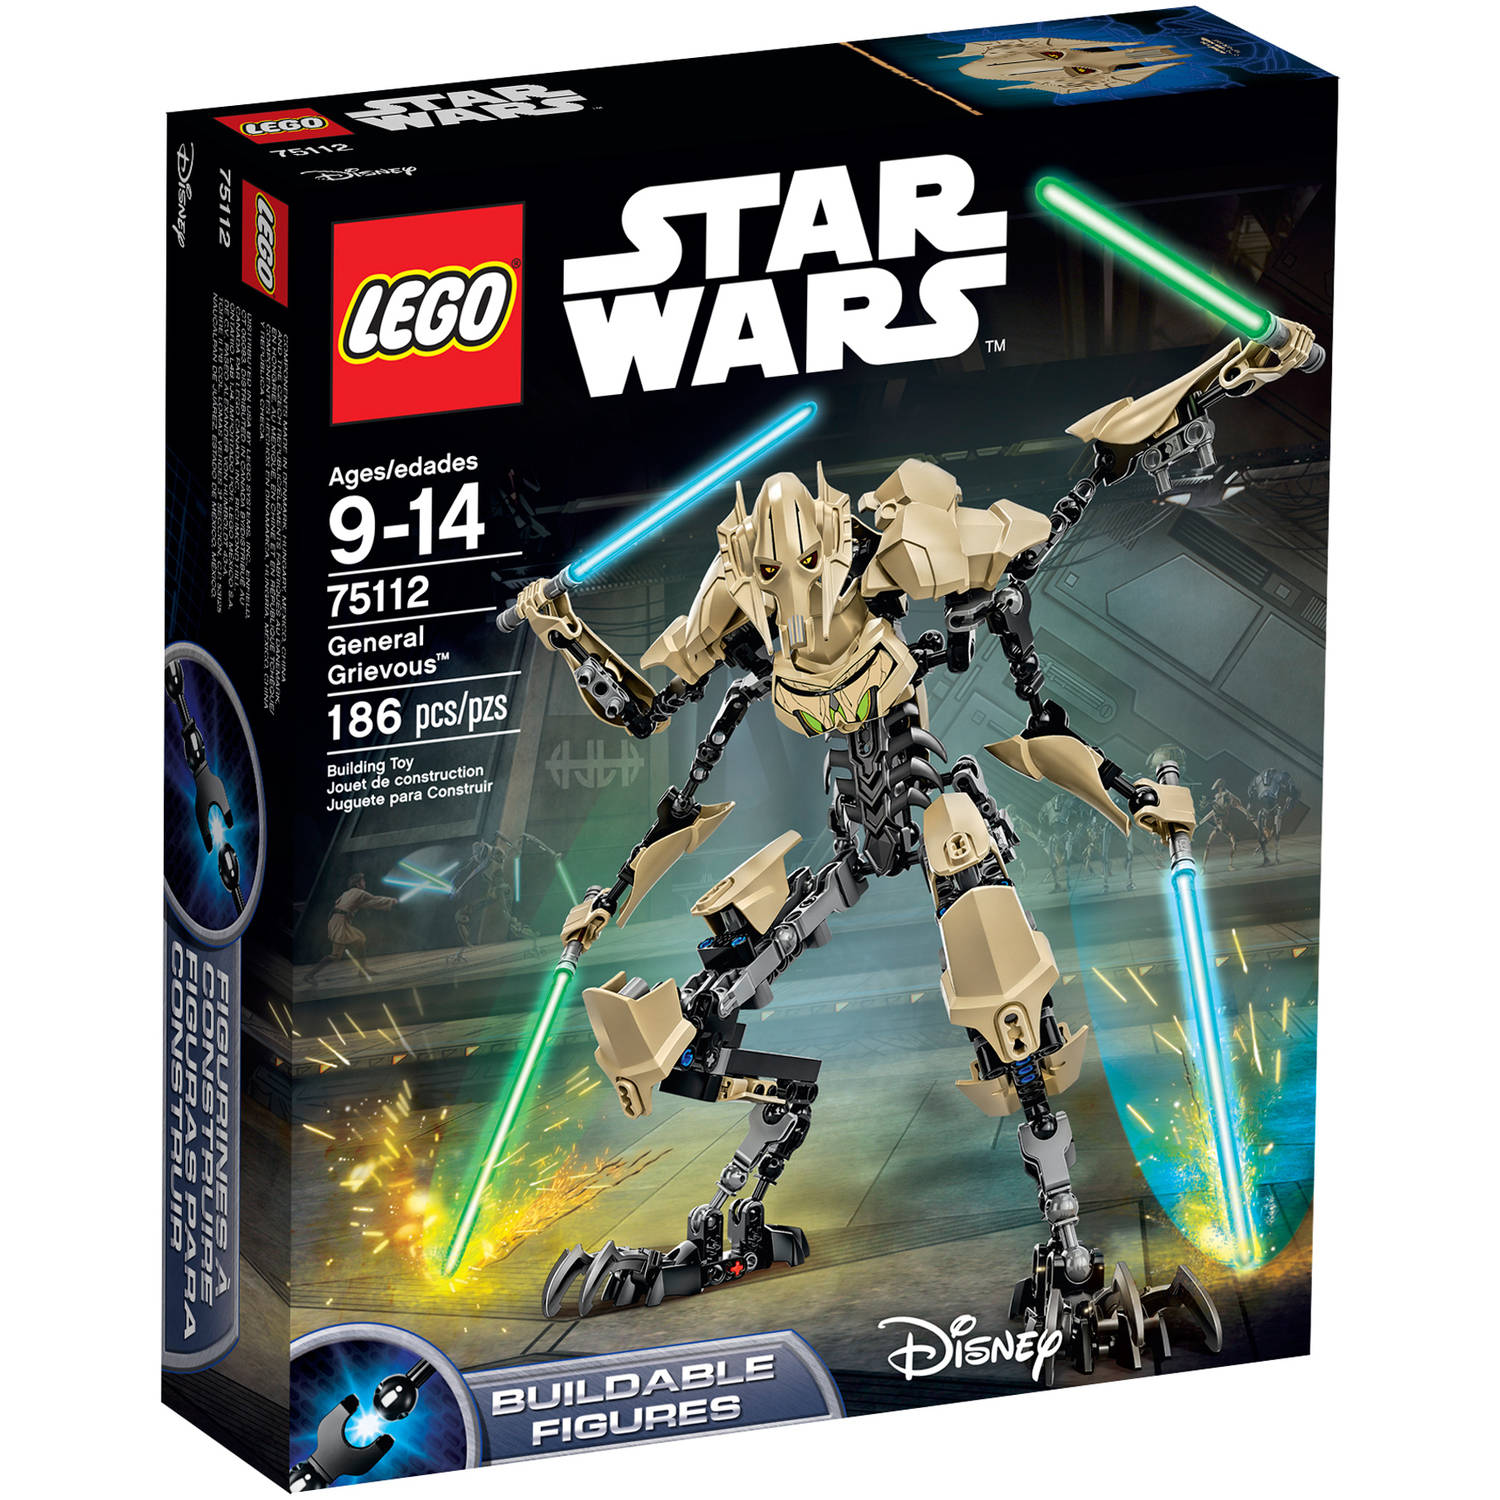 "LEGO Star Wars General Grievous"" 75112"